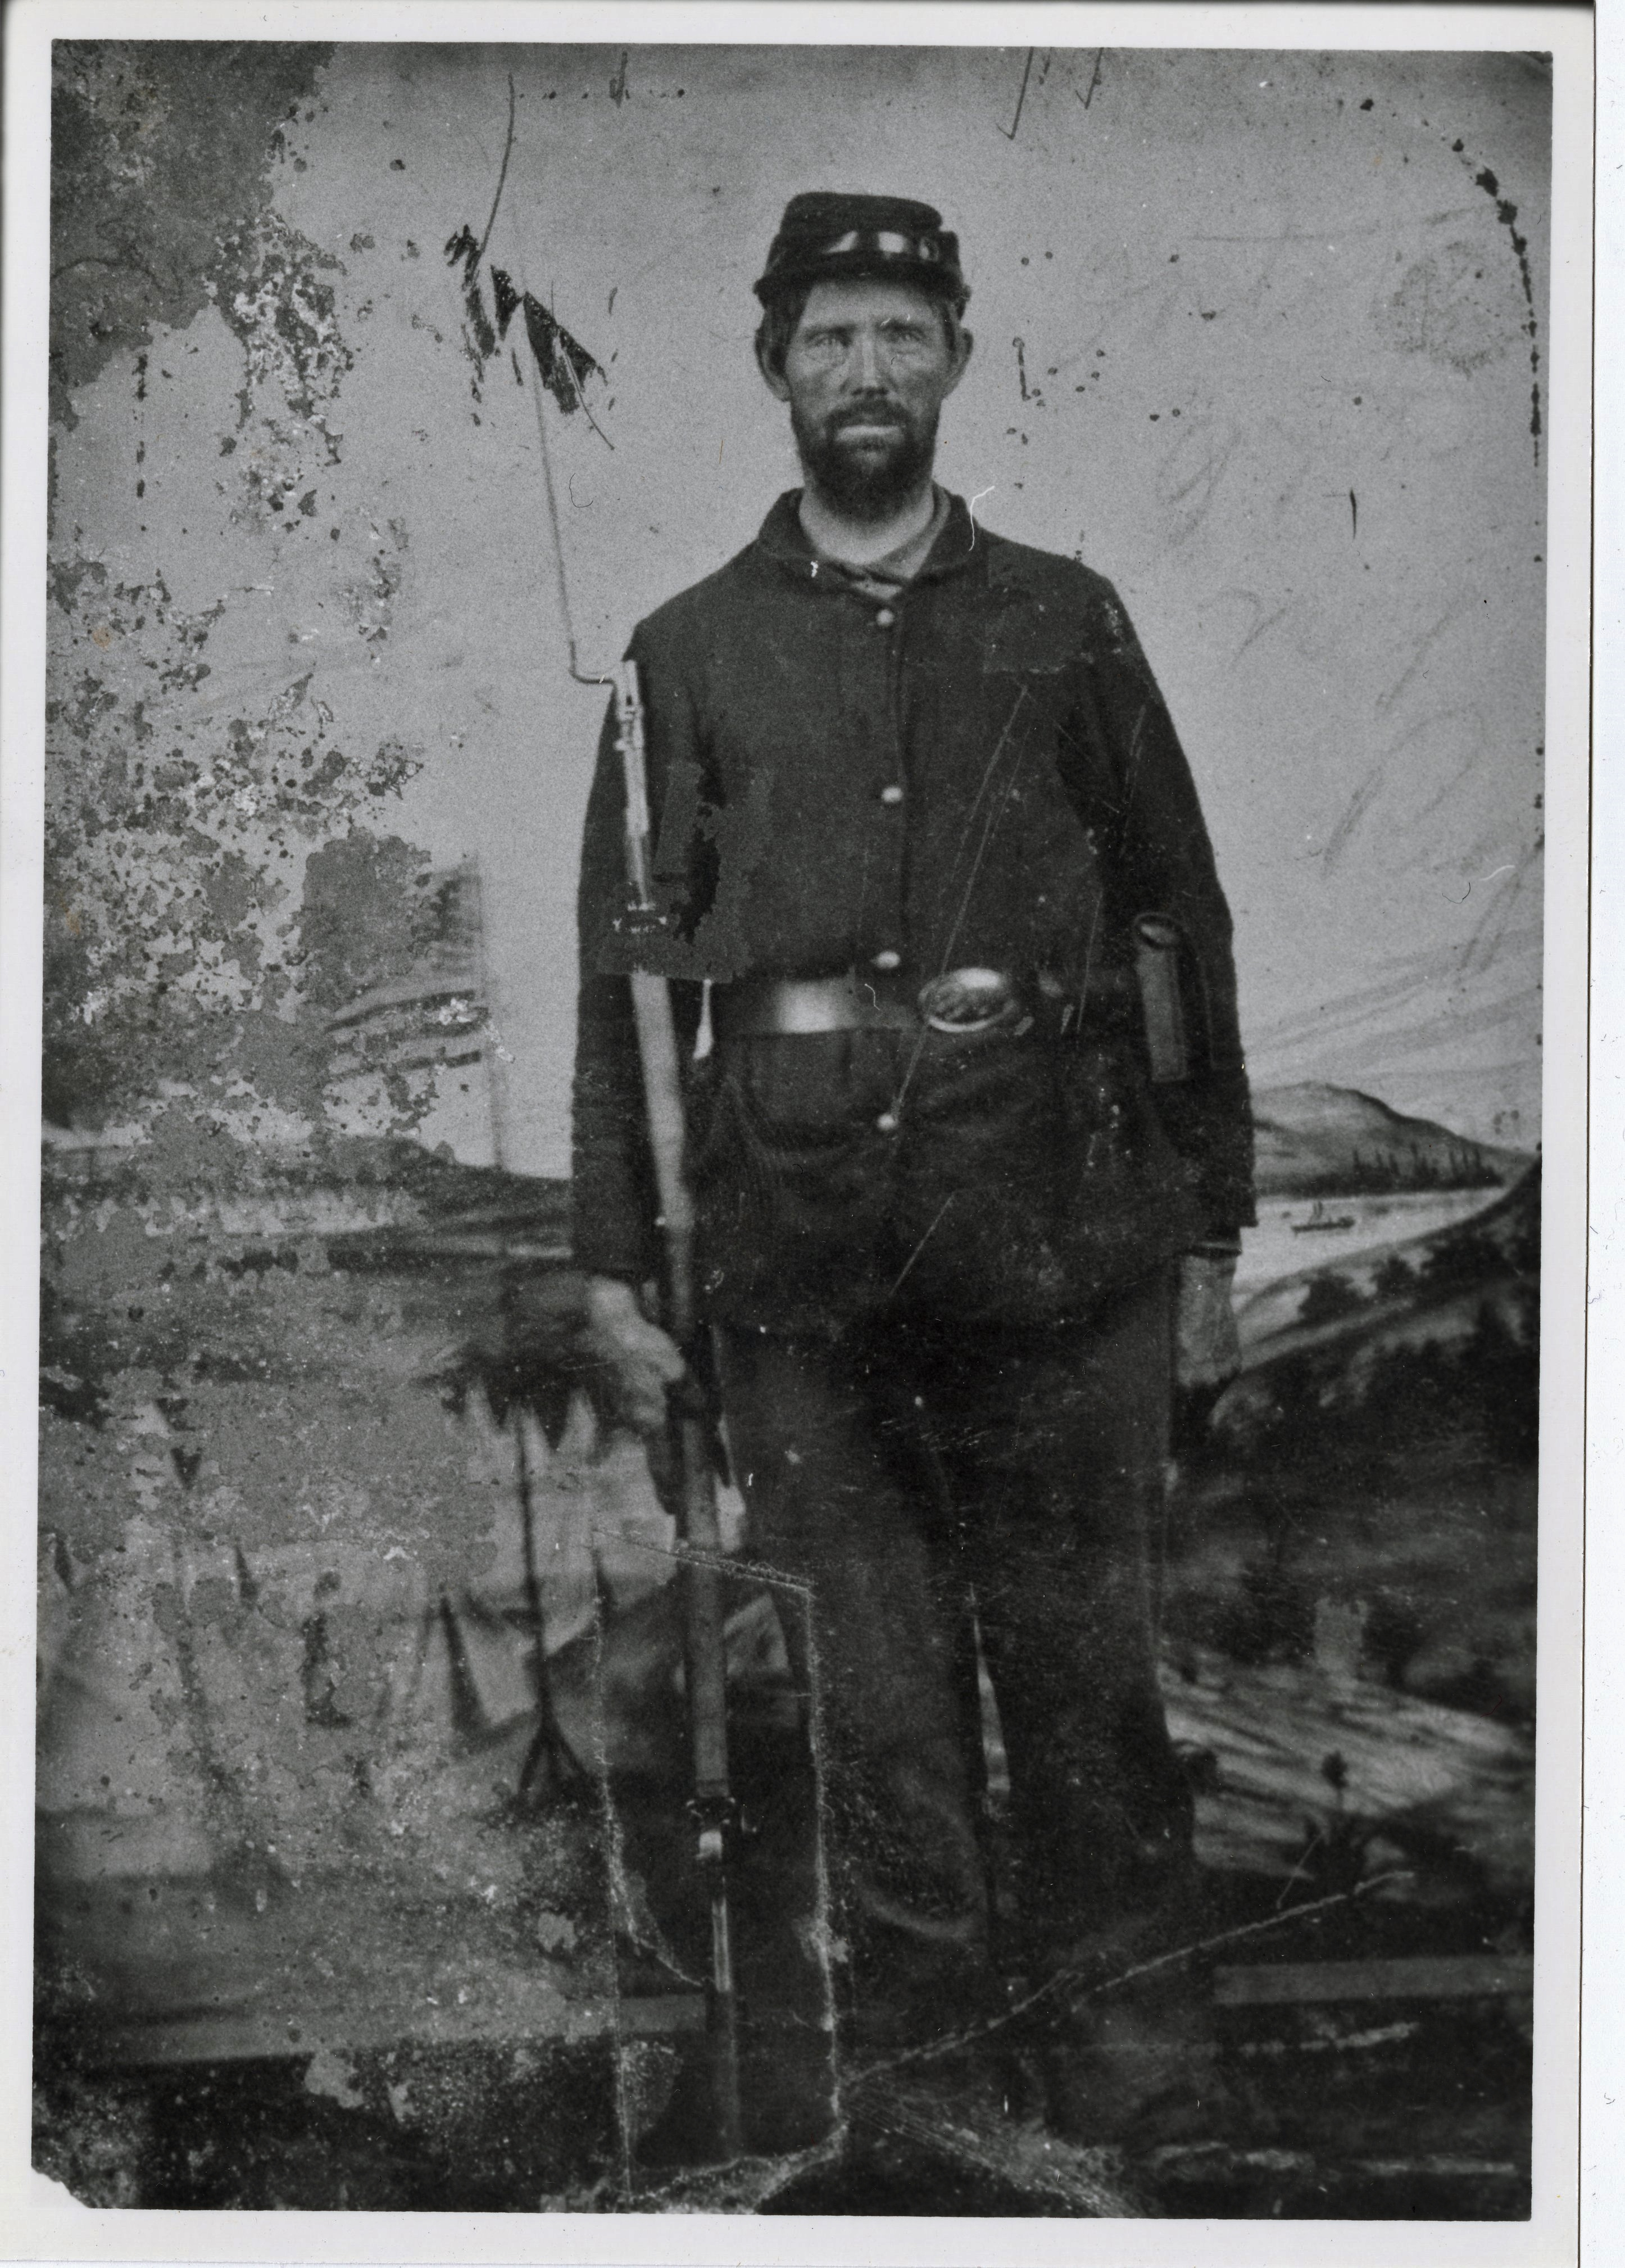 historic photograph of man in Civil War soldier uniform